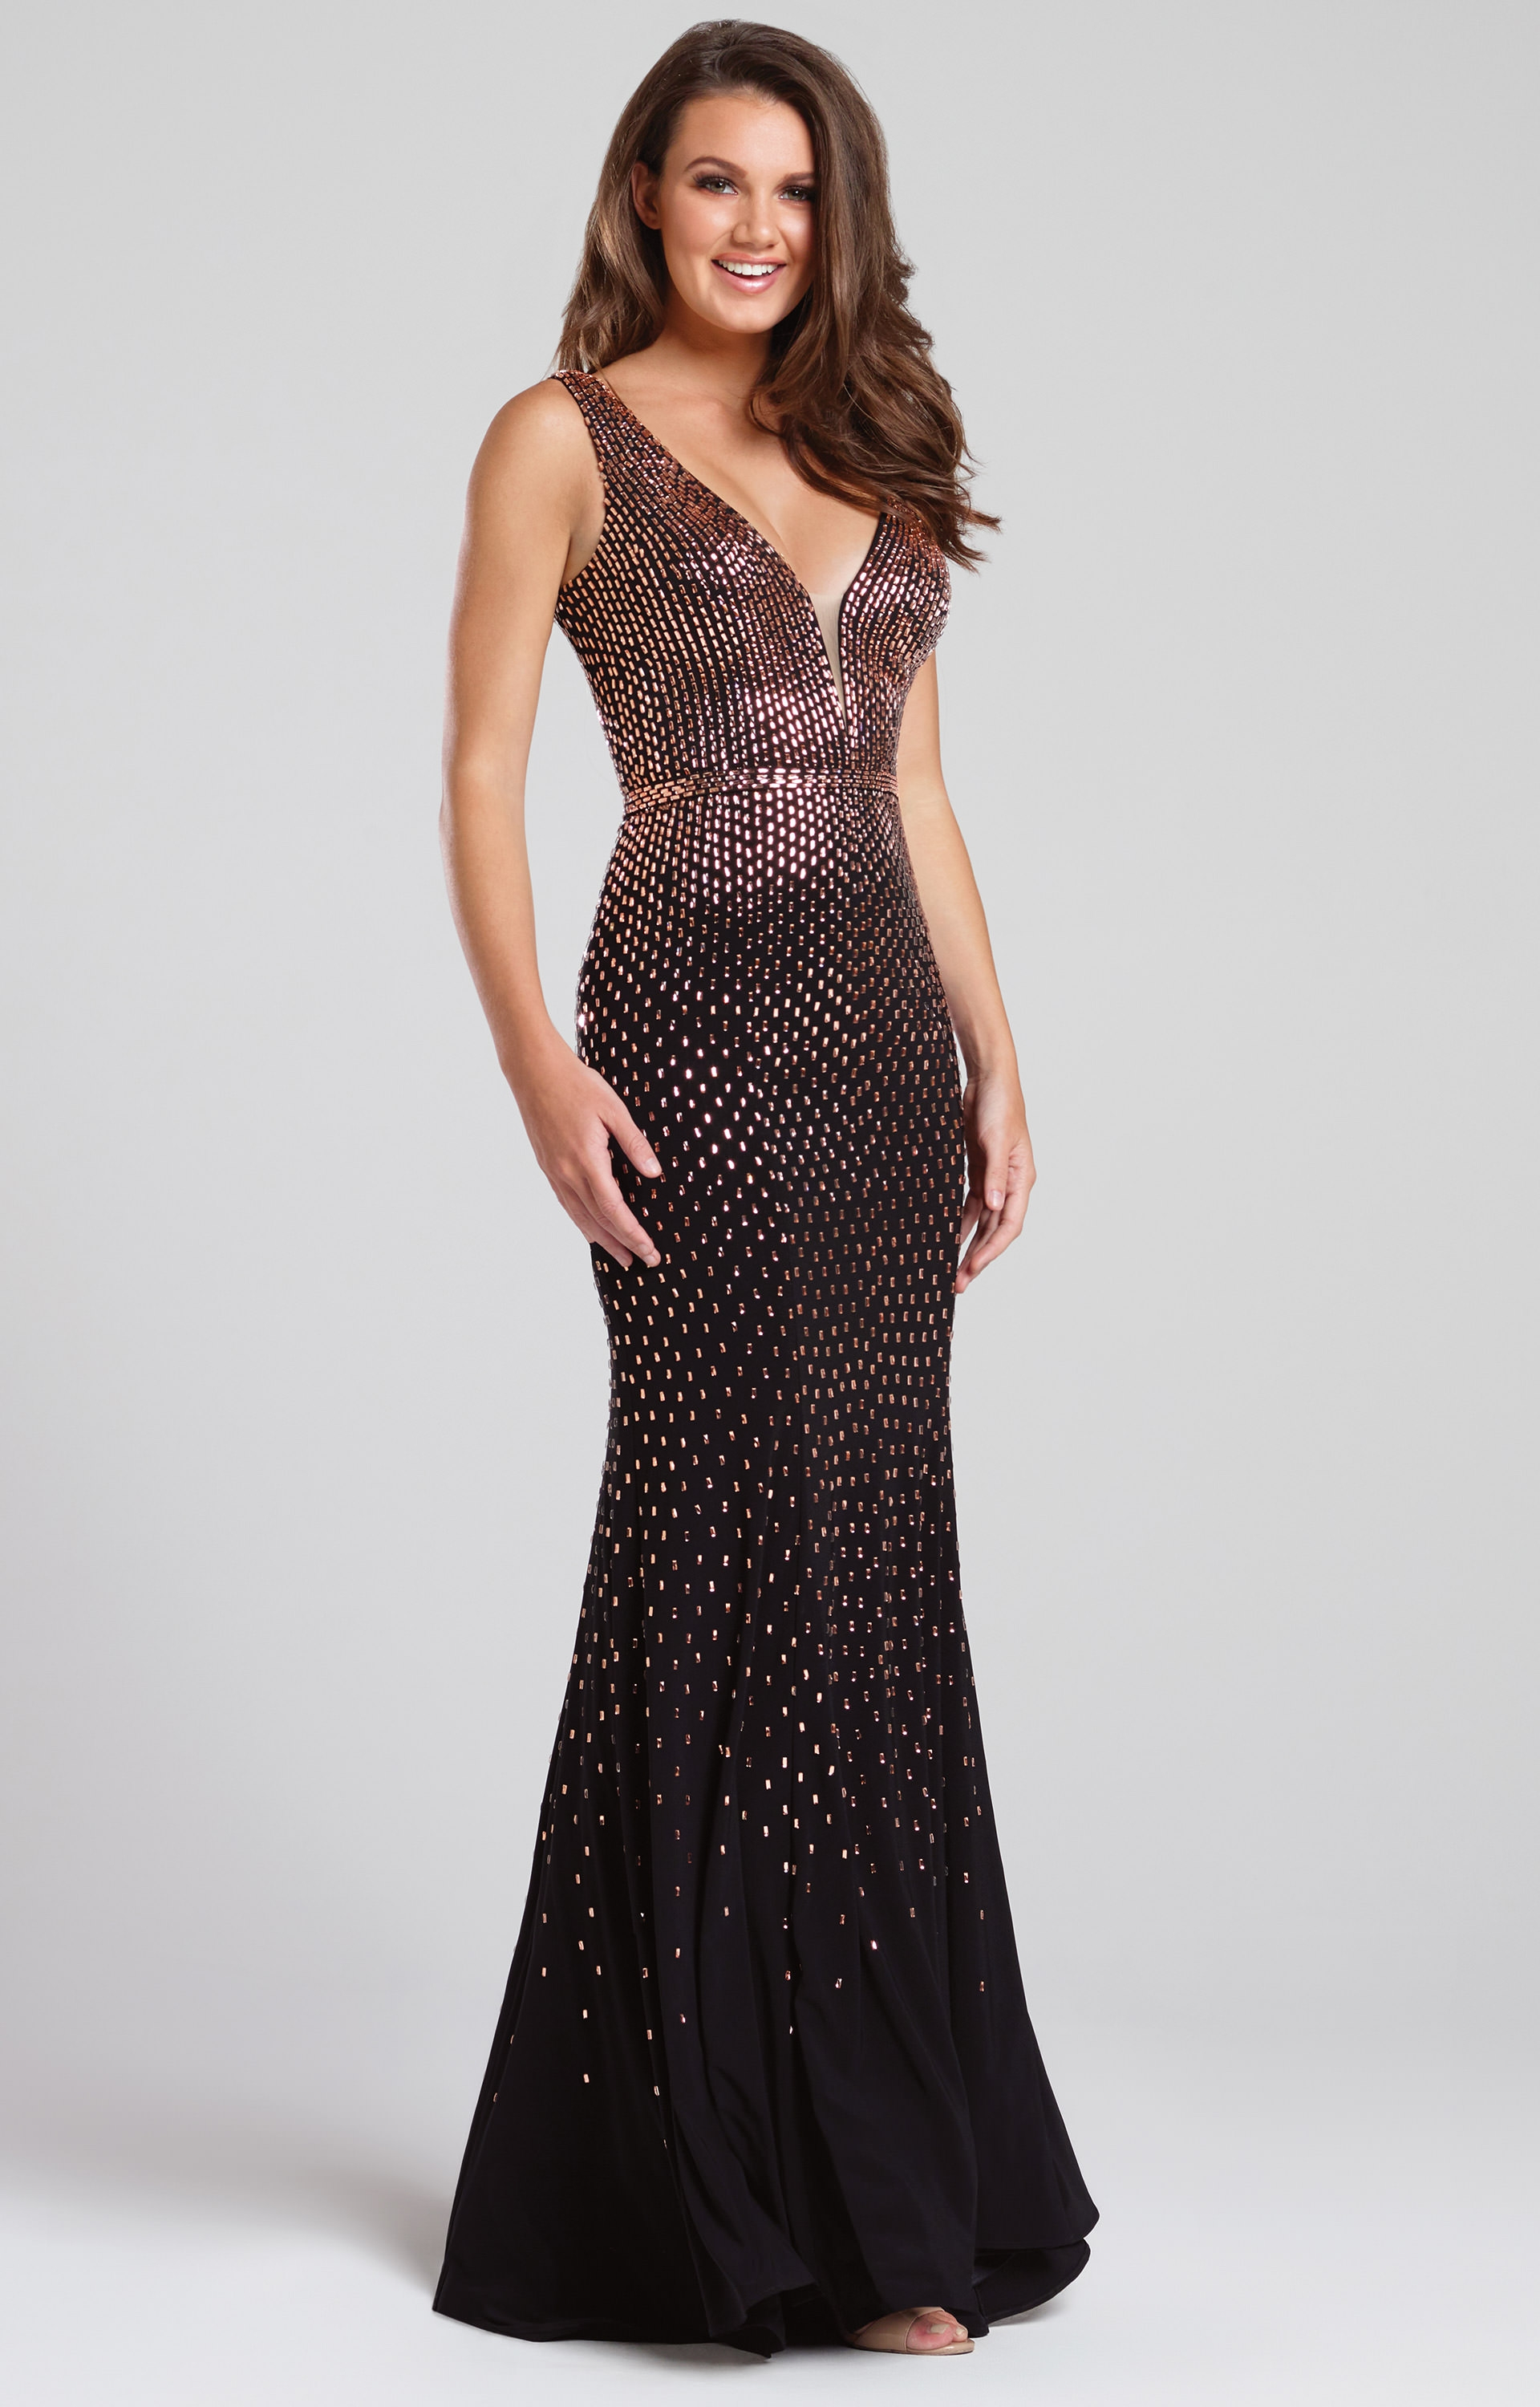 Ellie Wilde Ew117111 Stoned In Bronze Fitted Dress Prom